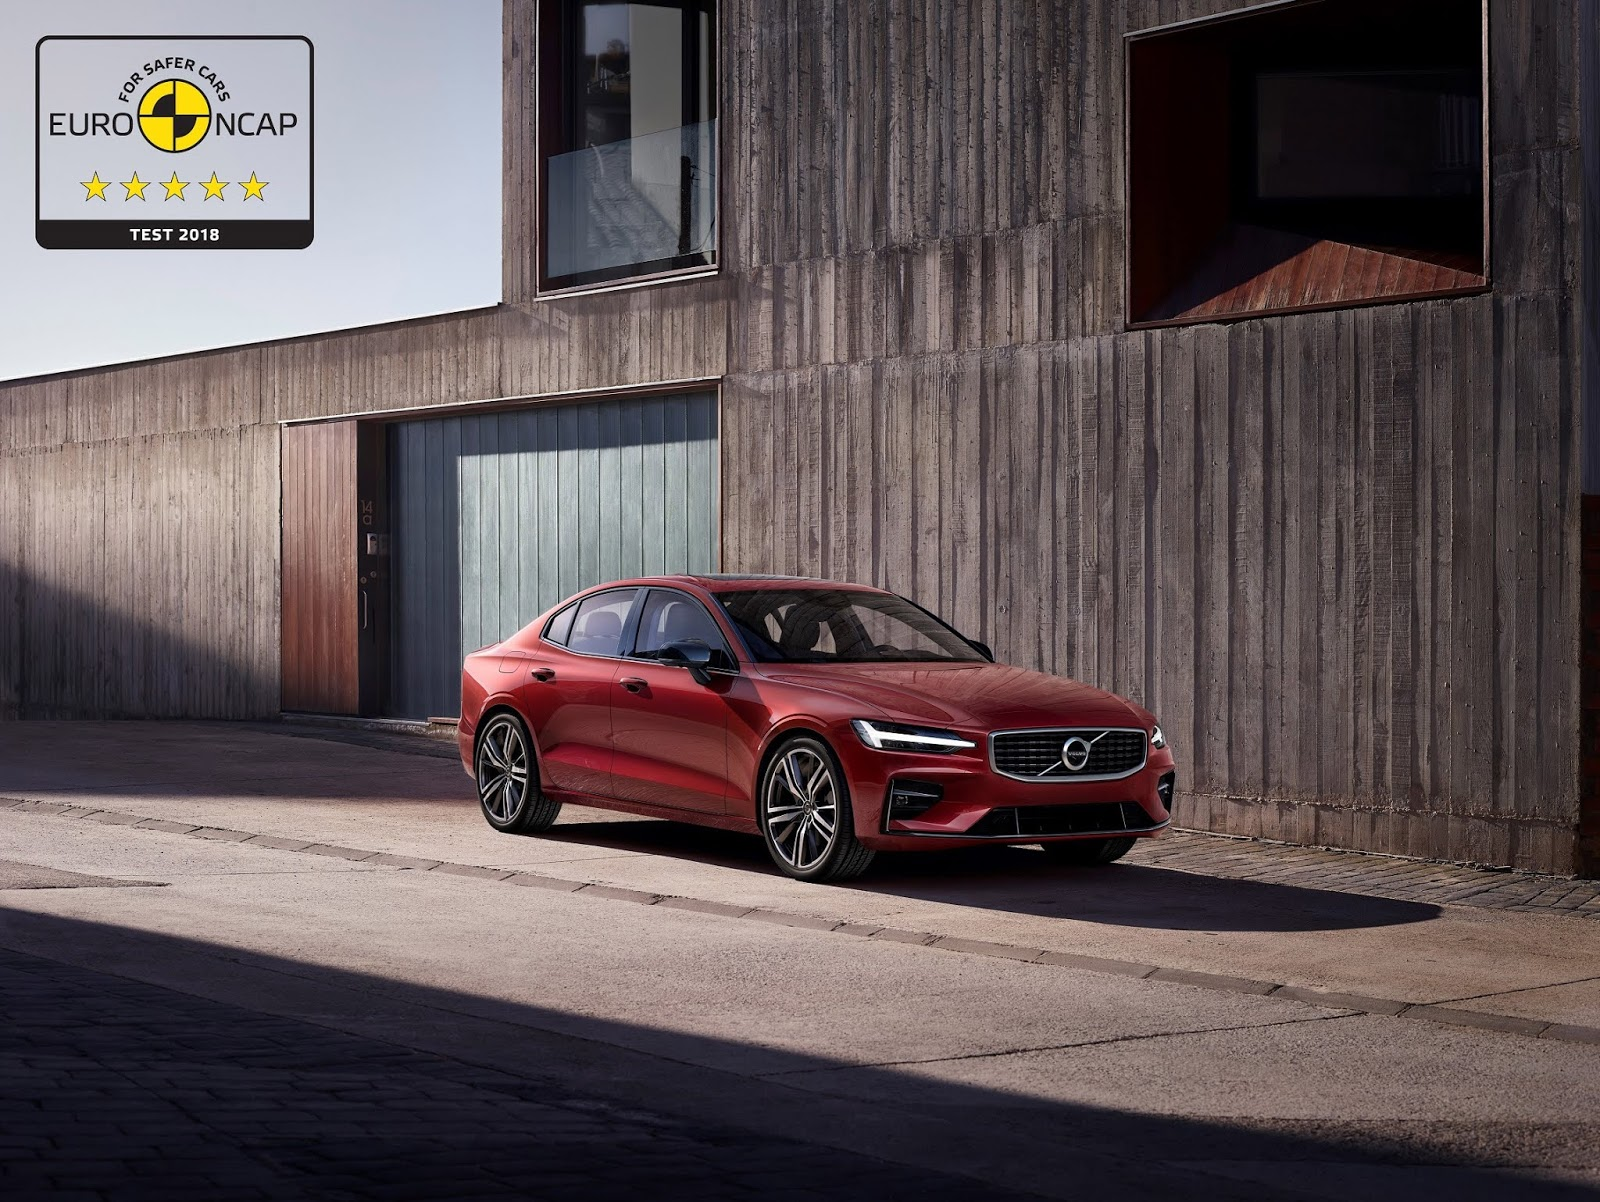 246534 Volvo S60 and V60 secure 5 star safety rating by Euro NCAP2B1 Συνεχίζουν το σερί 5 αστέρων τα Volvo S60 και V60 crash tests, Euro NCAP, Volvo, Volvo S60, Volvo V60